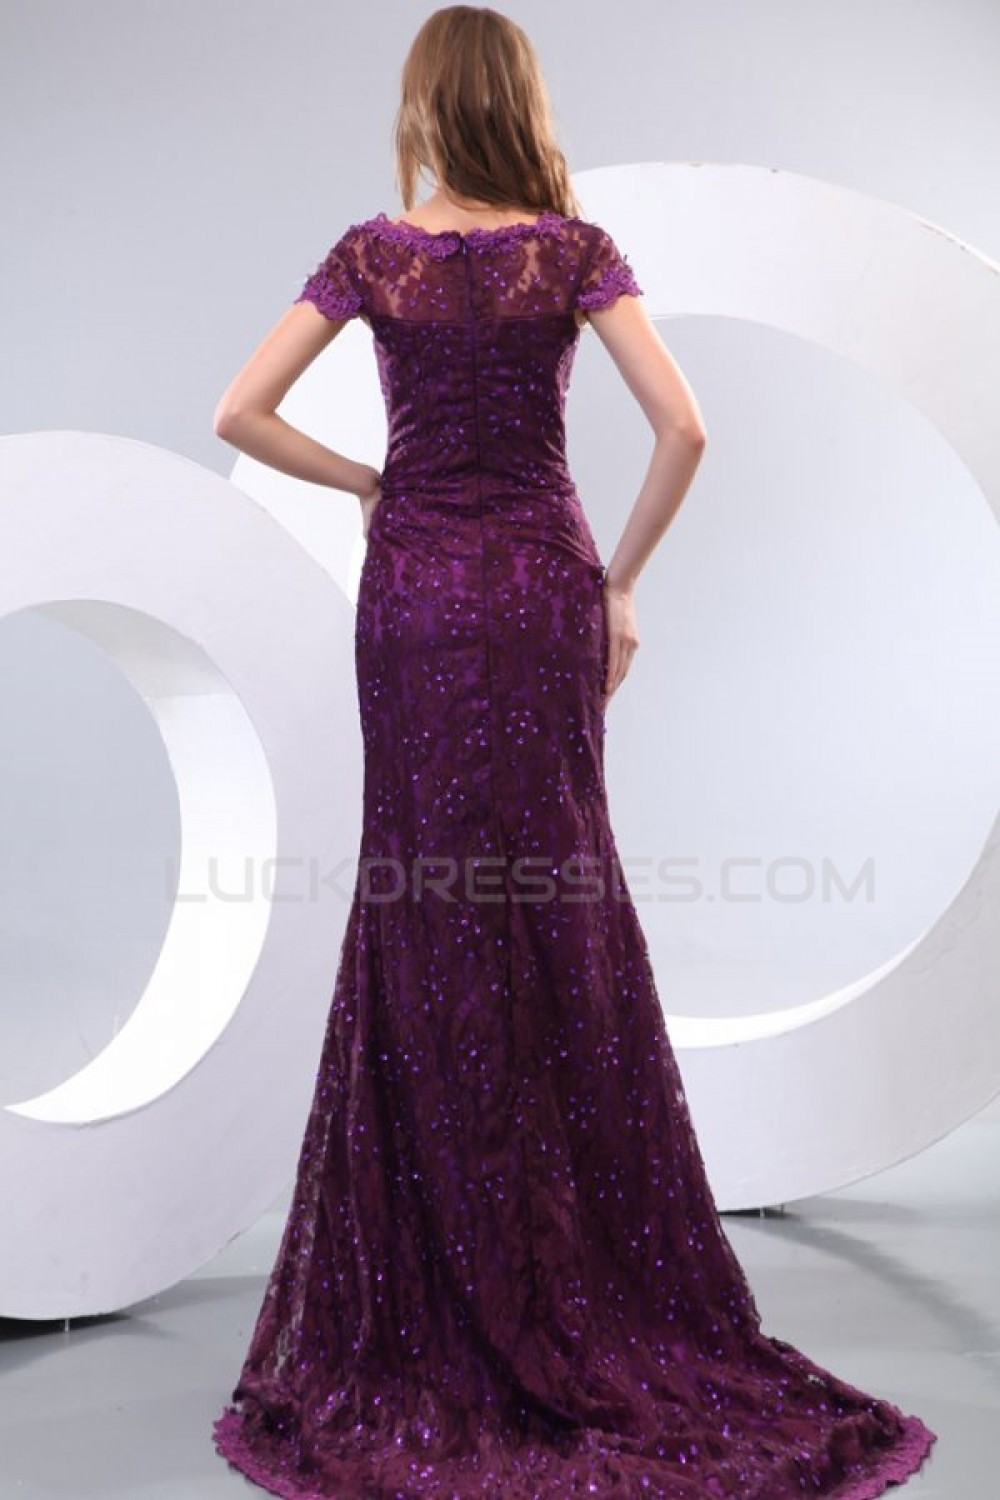 f607919084cf7 Trumpet/Mermaid Long Purple Lace Prom Evening Formal Party Dresses ED010131